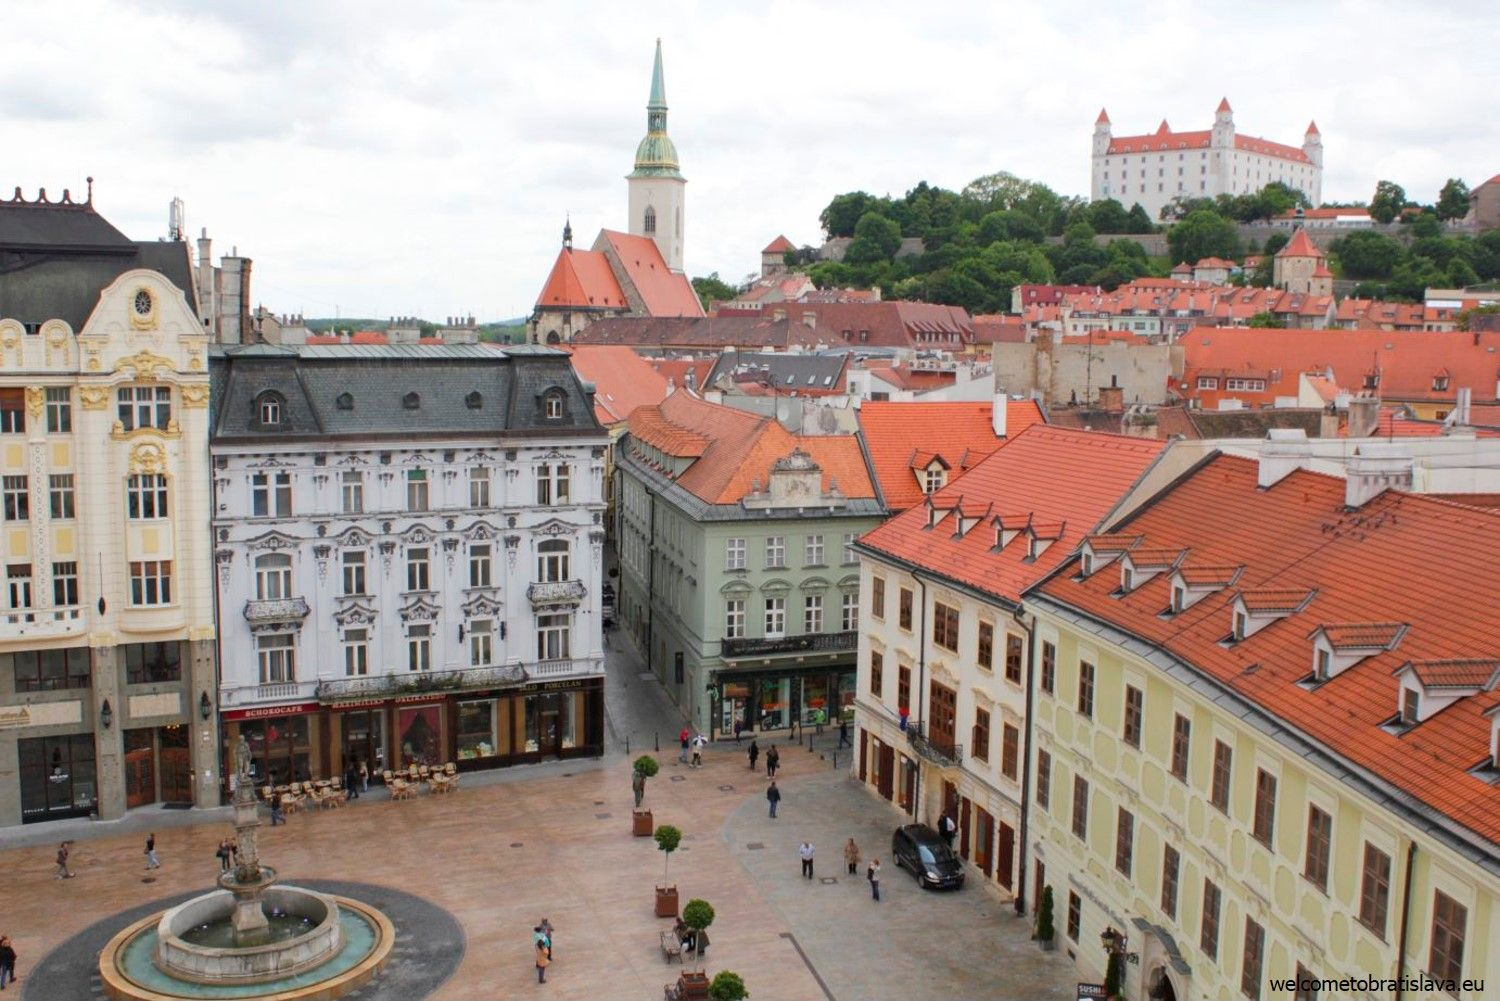 cf2626238 You only have one day to spend in Bratislava and don't know what are the  most important things to do, see, eat and buy? What shall you definitely  not miss?